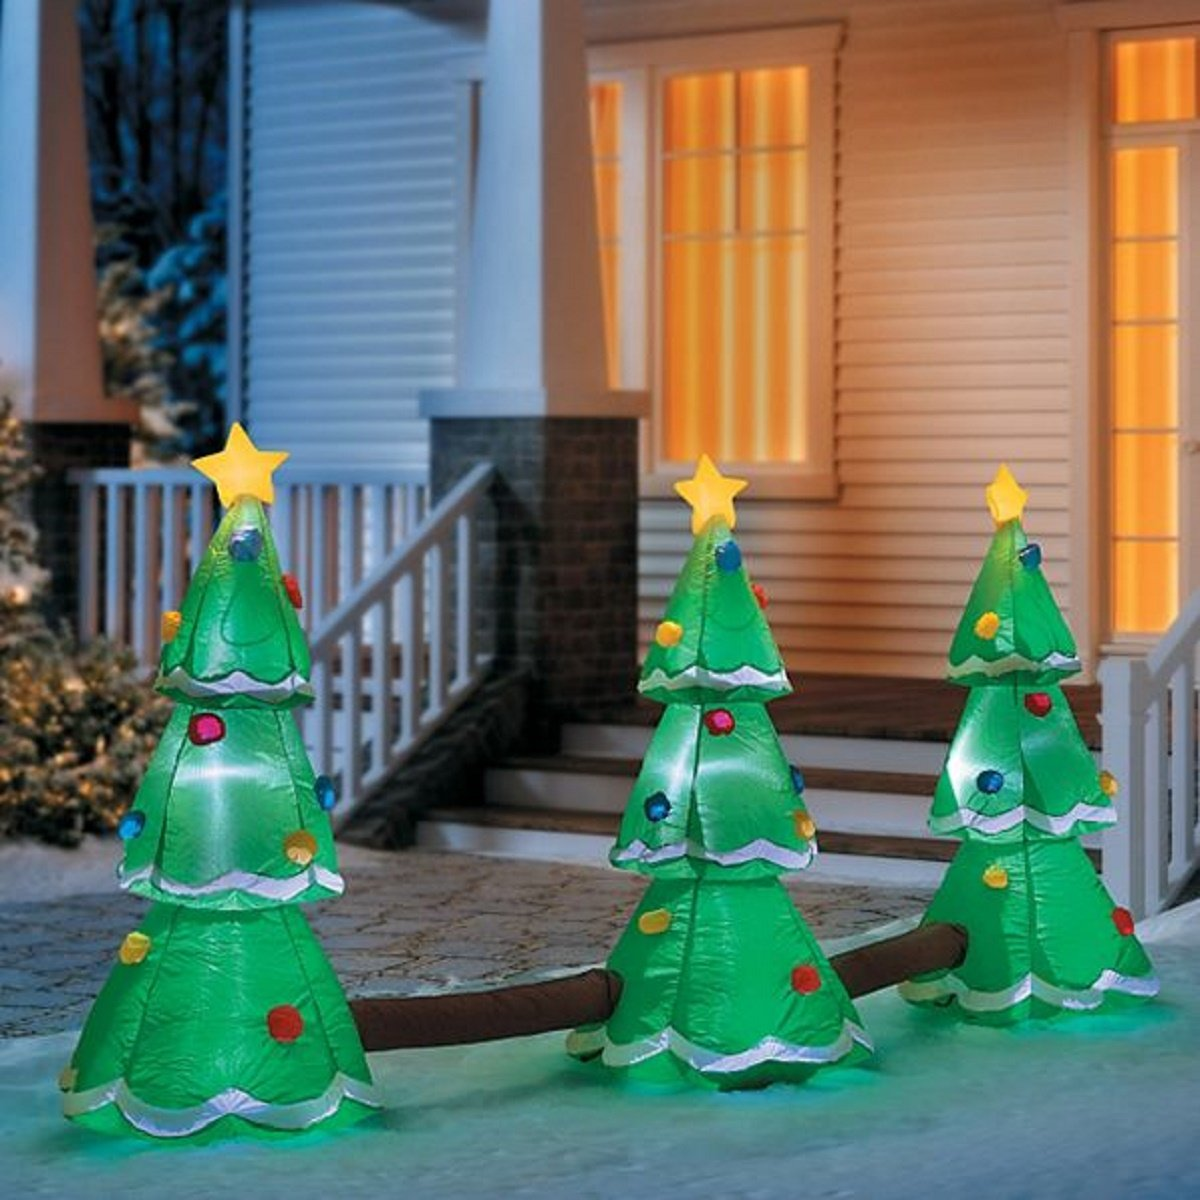 Cheap Inflatable Christmas Decorations Yard, find ...